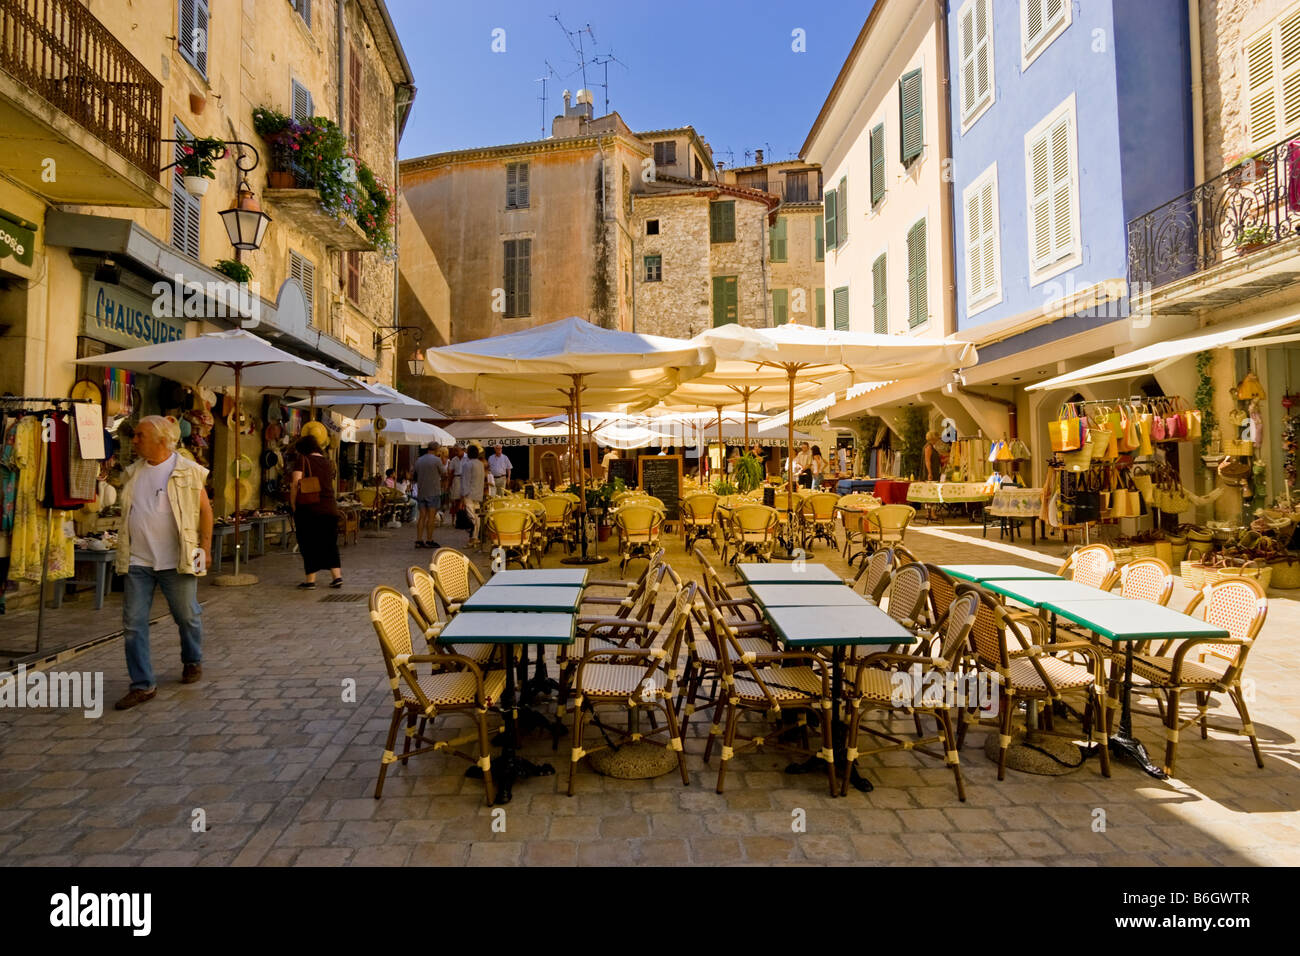 vence cote d 39 azur provence south of france old quarter market stock photo 21269831 alamy. Black Bedroom Furniture Sets. Home Design Ideas